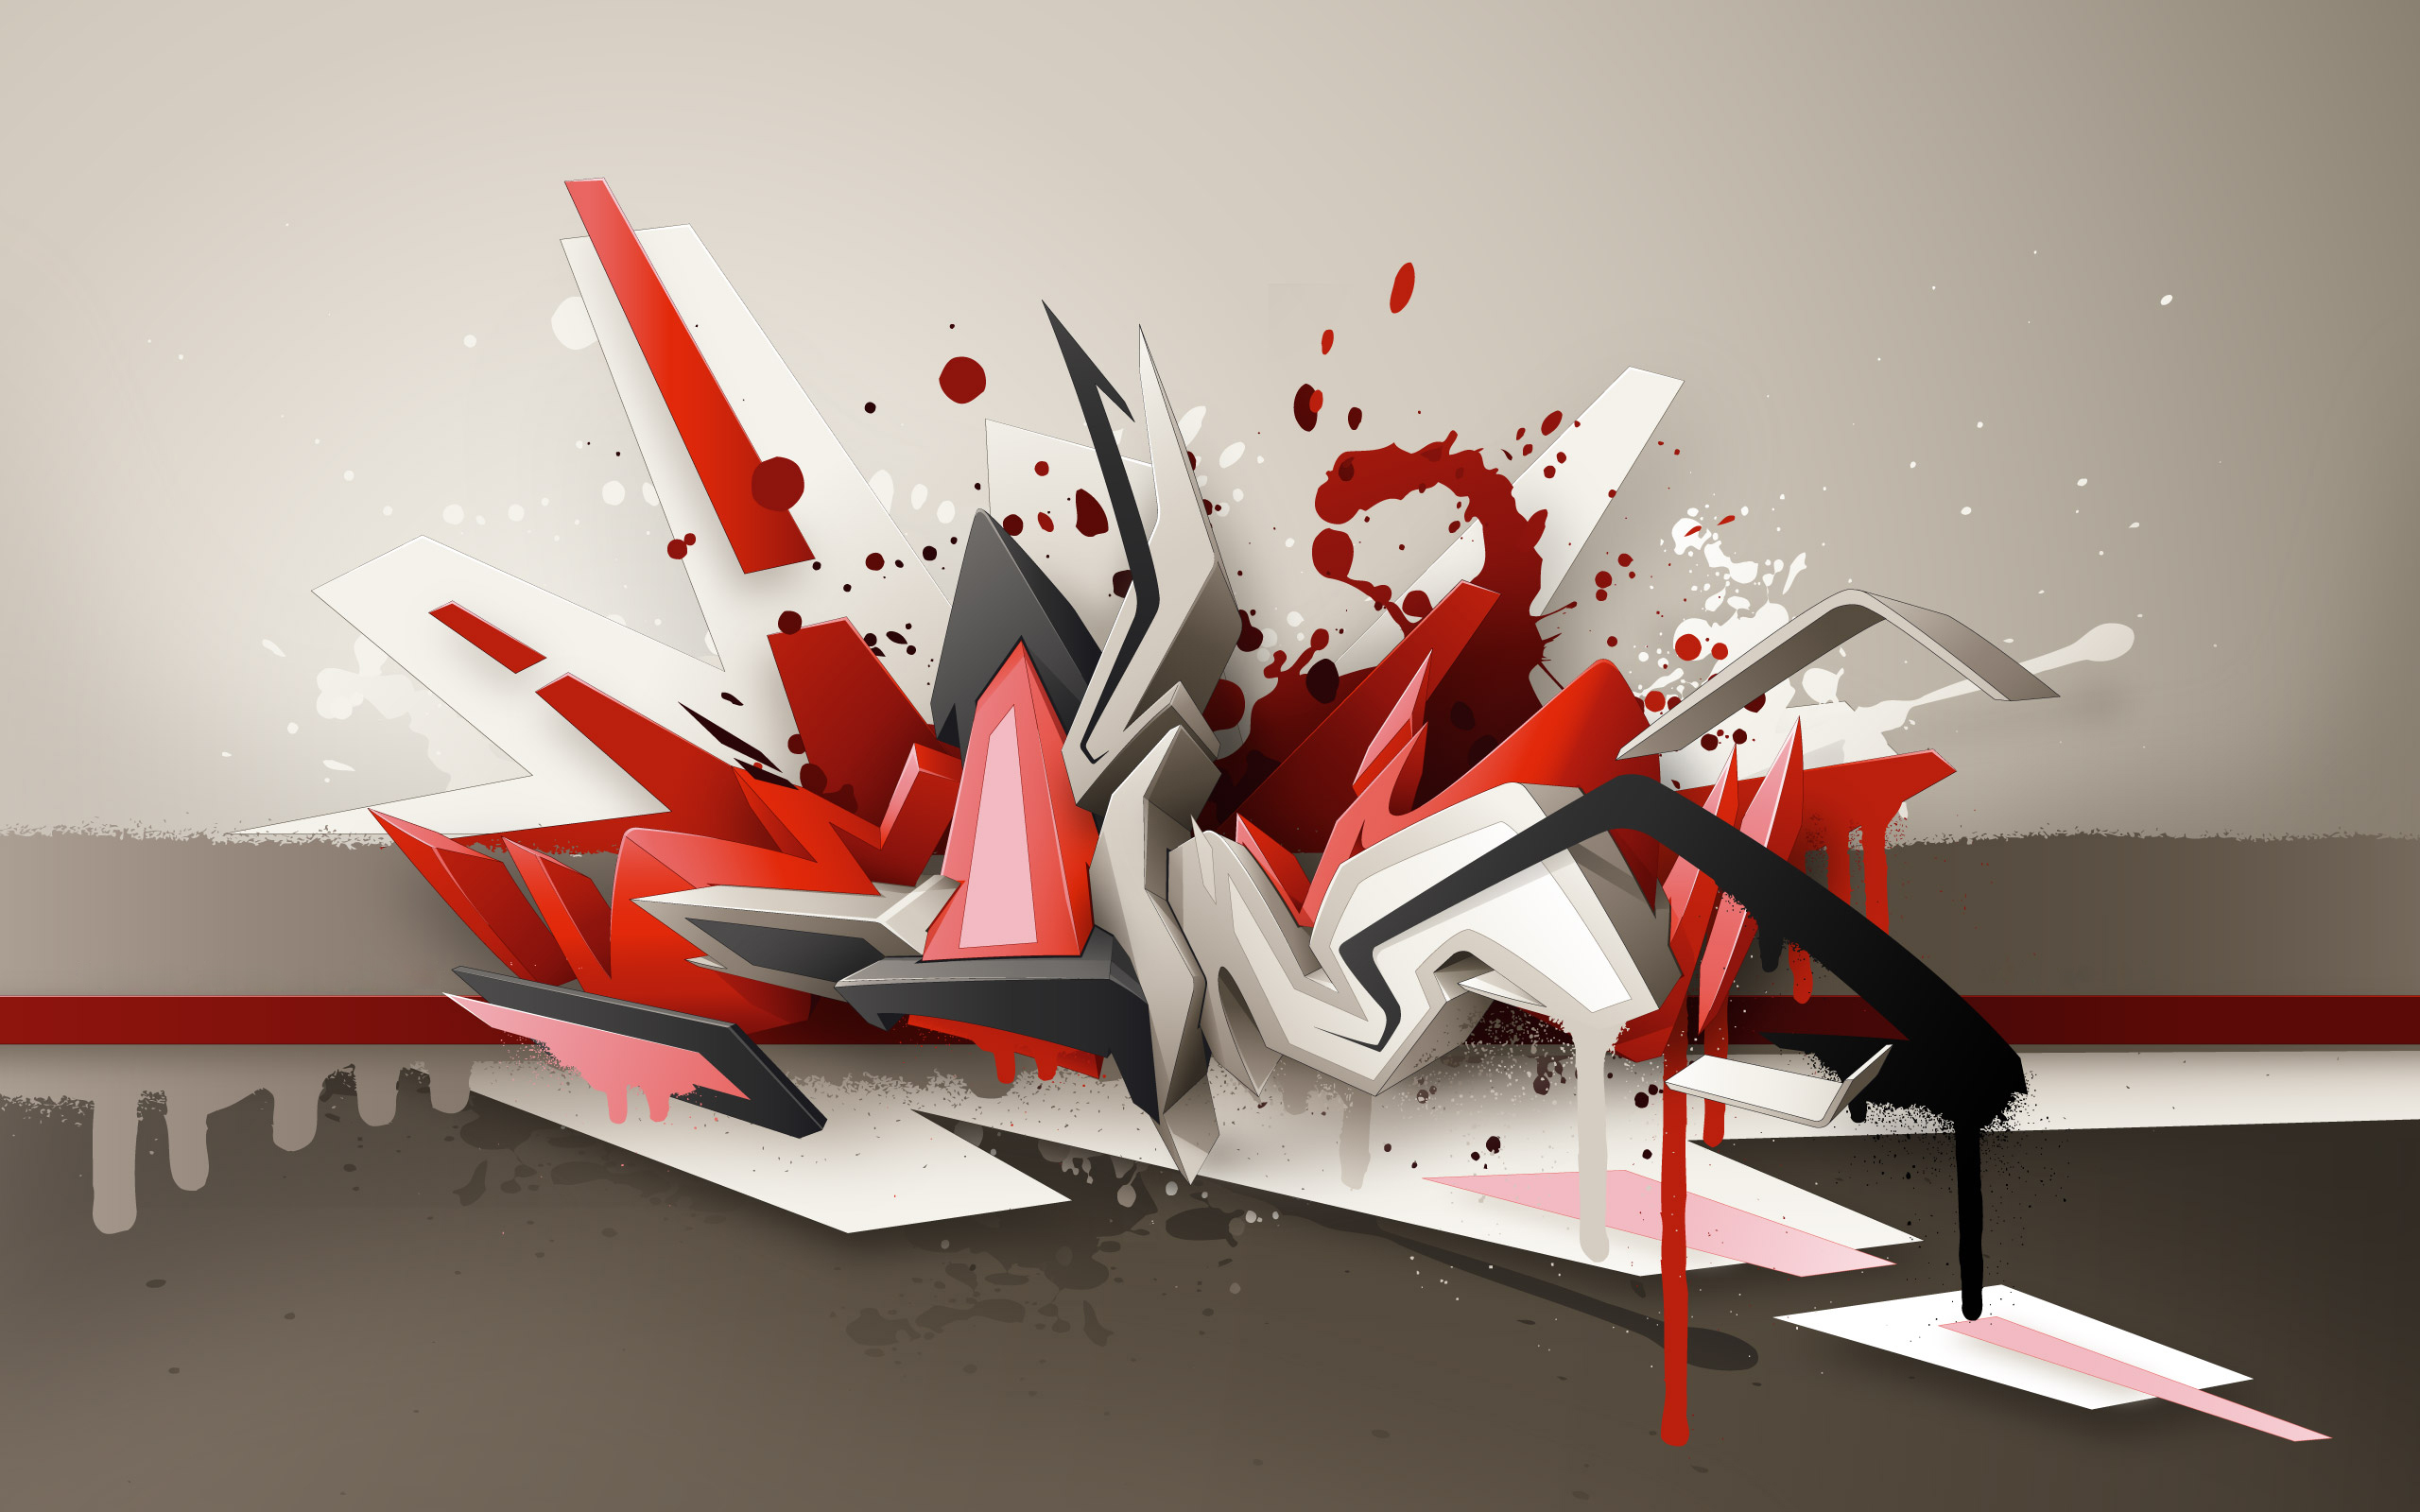 abstract graffiti street art HD Wallpaper